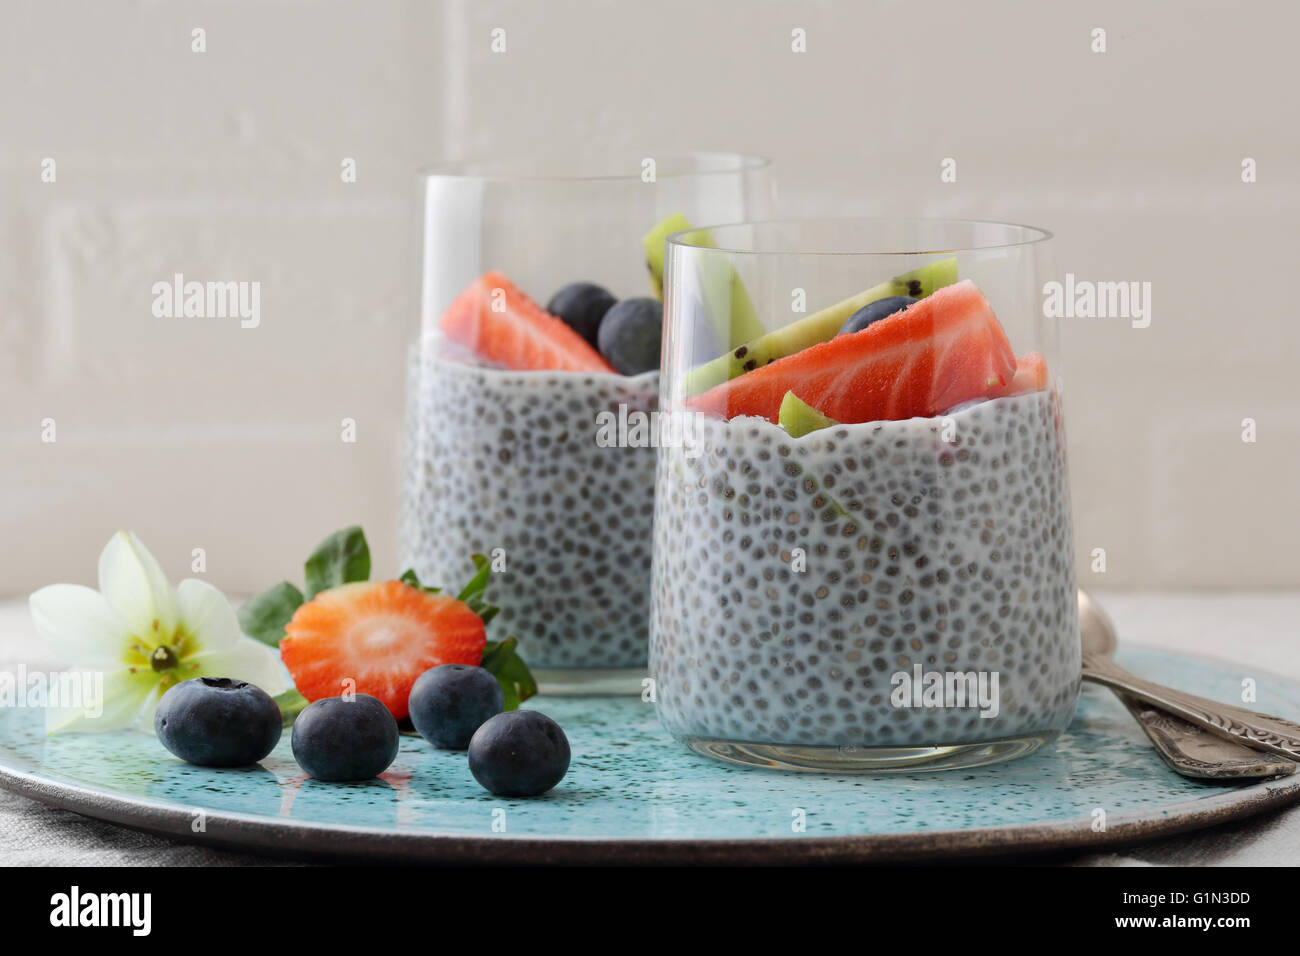 breakfast with chia and fruits, food closeup - Stock Image